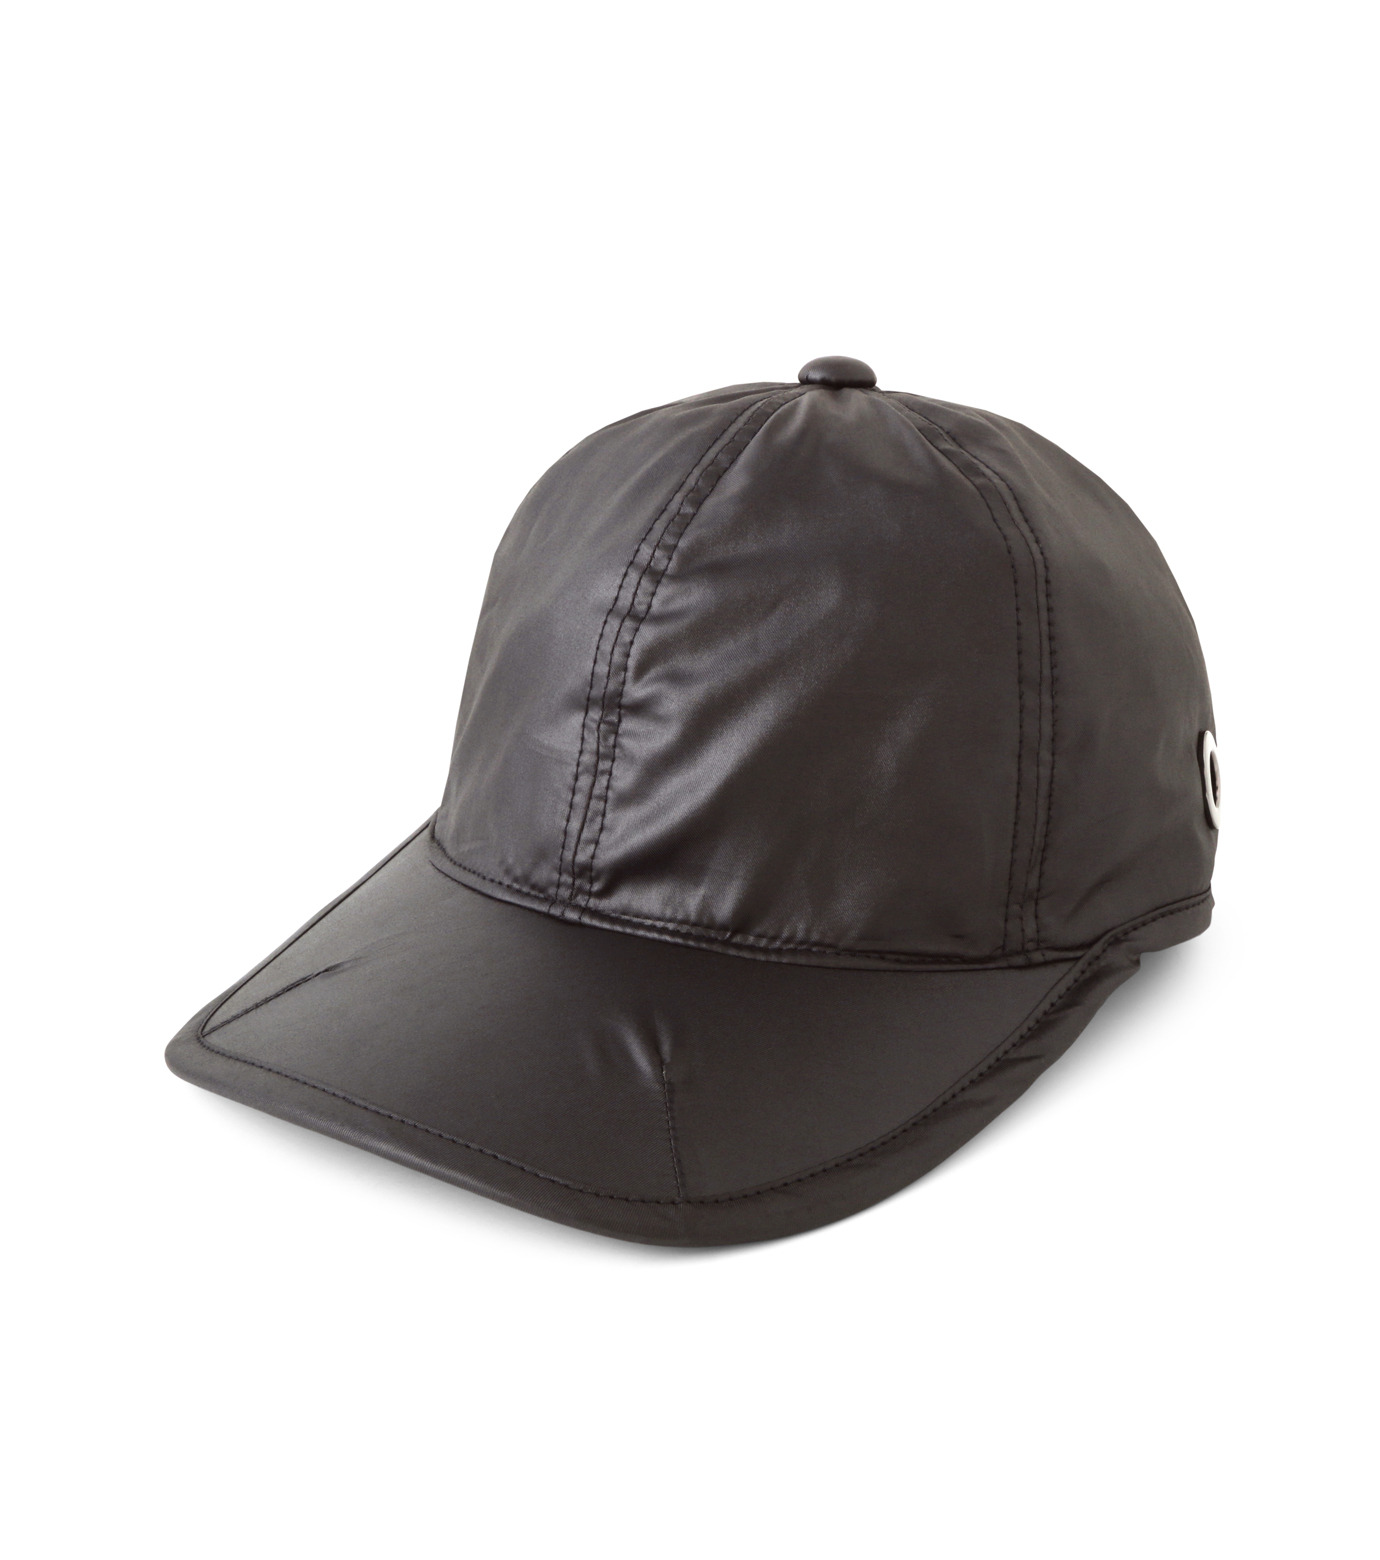 HEY YOU !(ヘイユウ)のWASHED TWILL CAP-BLACK(HATS/HATS)-18S90023-13 拡大詳細画像1